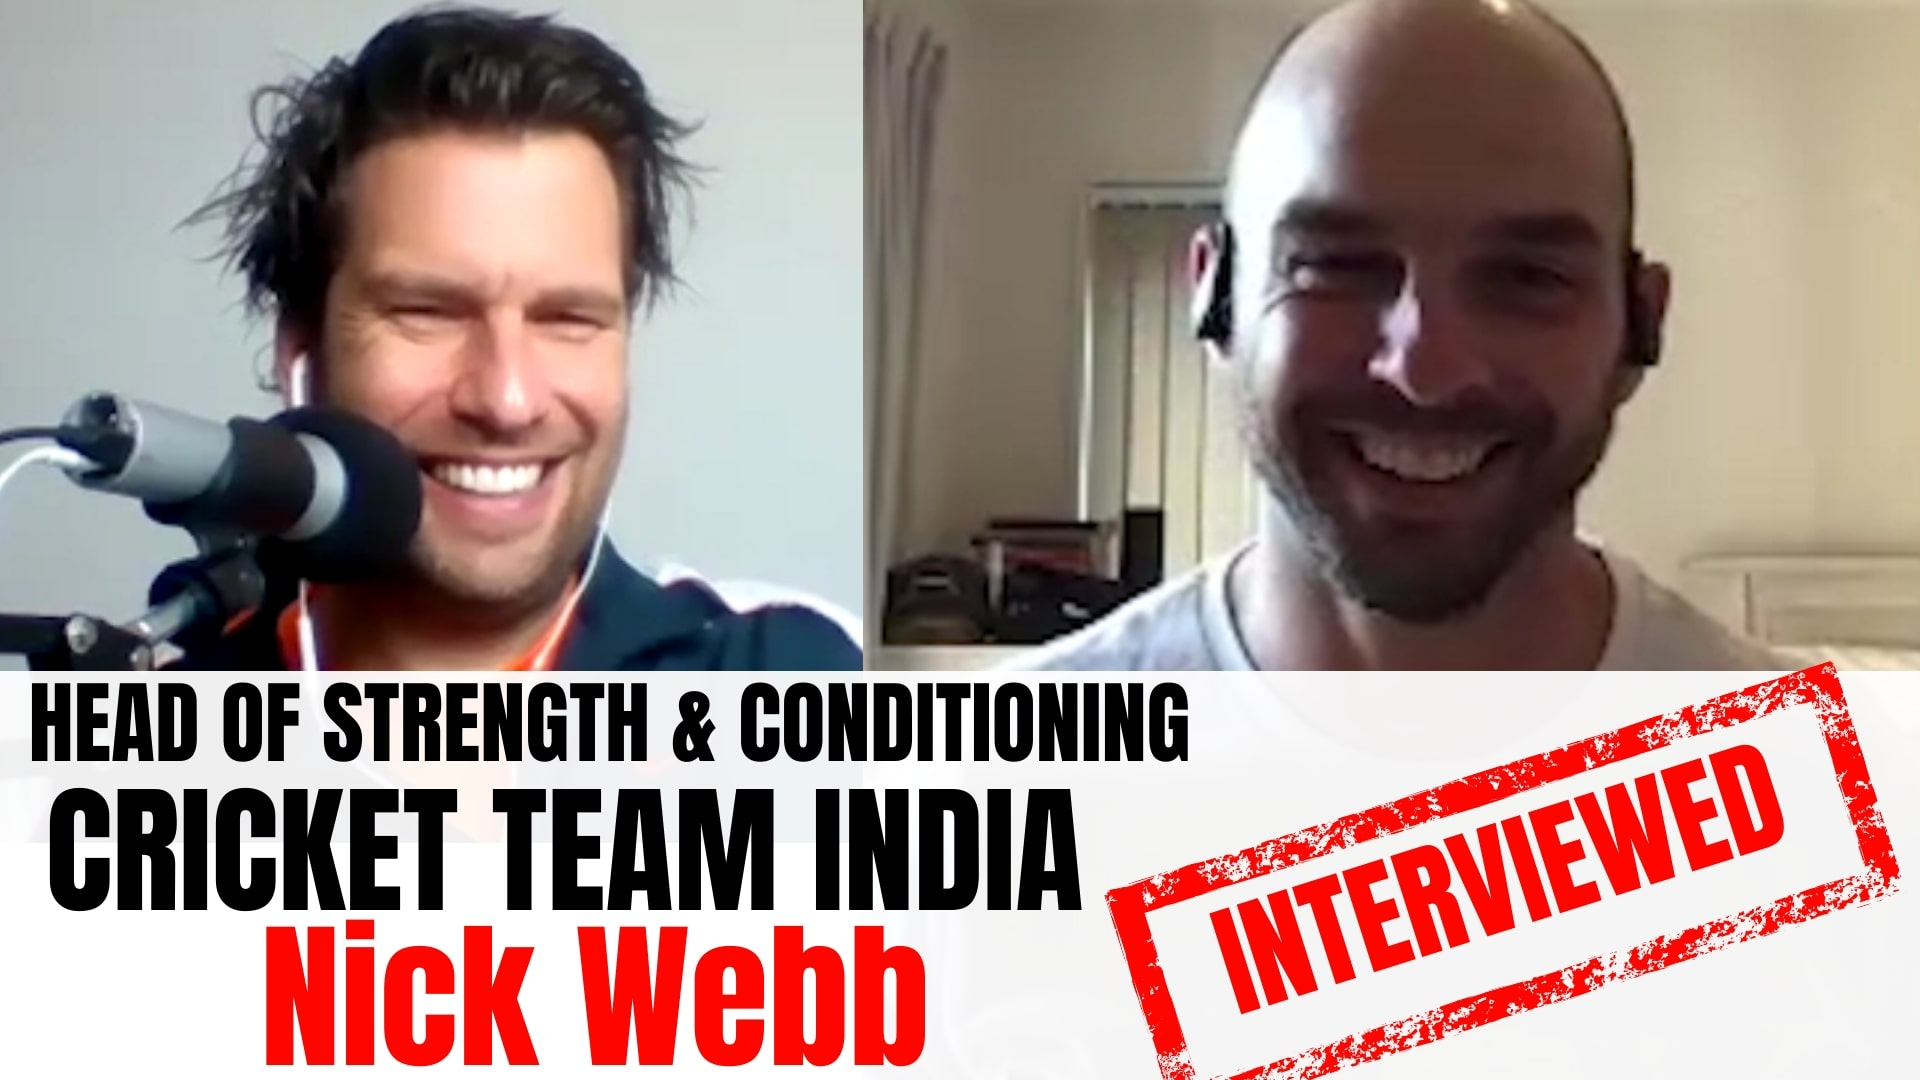 Nick Webb Cricket Nick Webb Cricket India